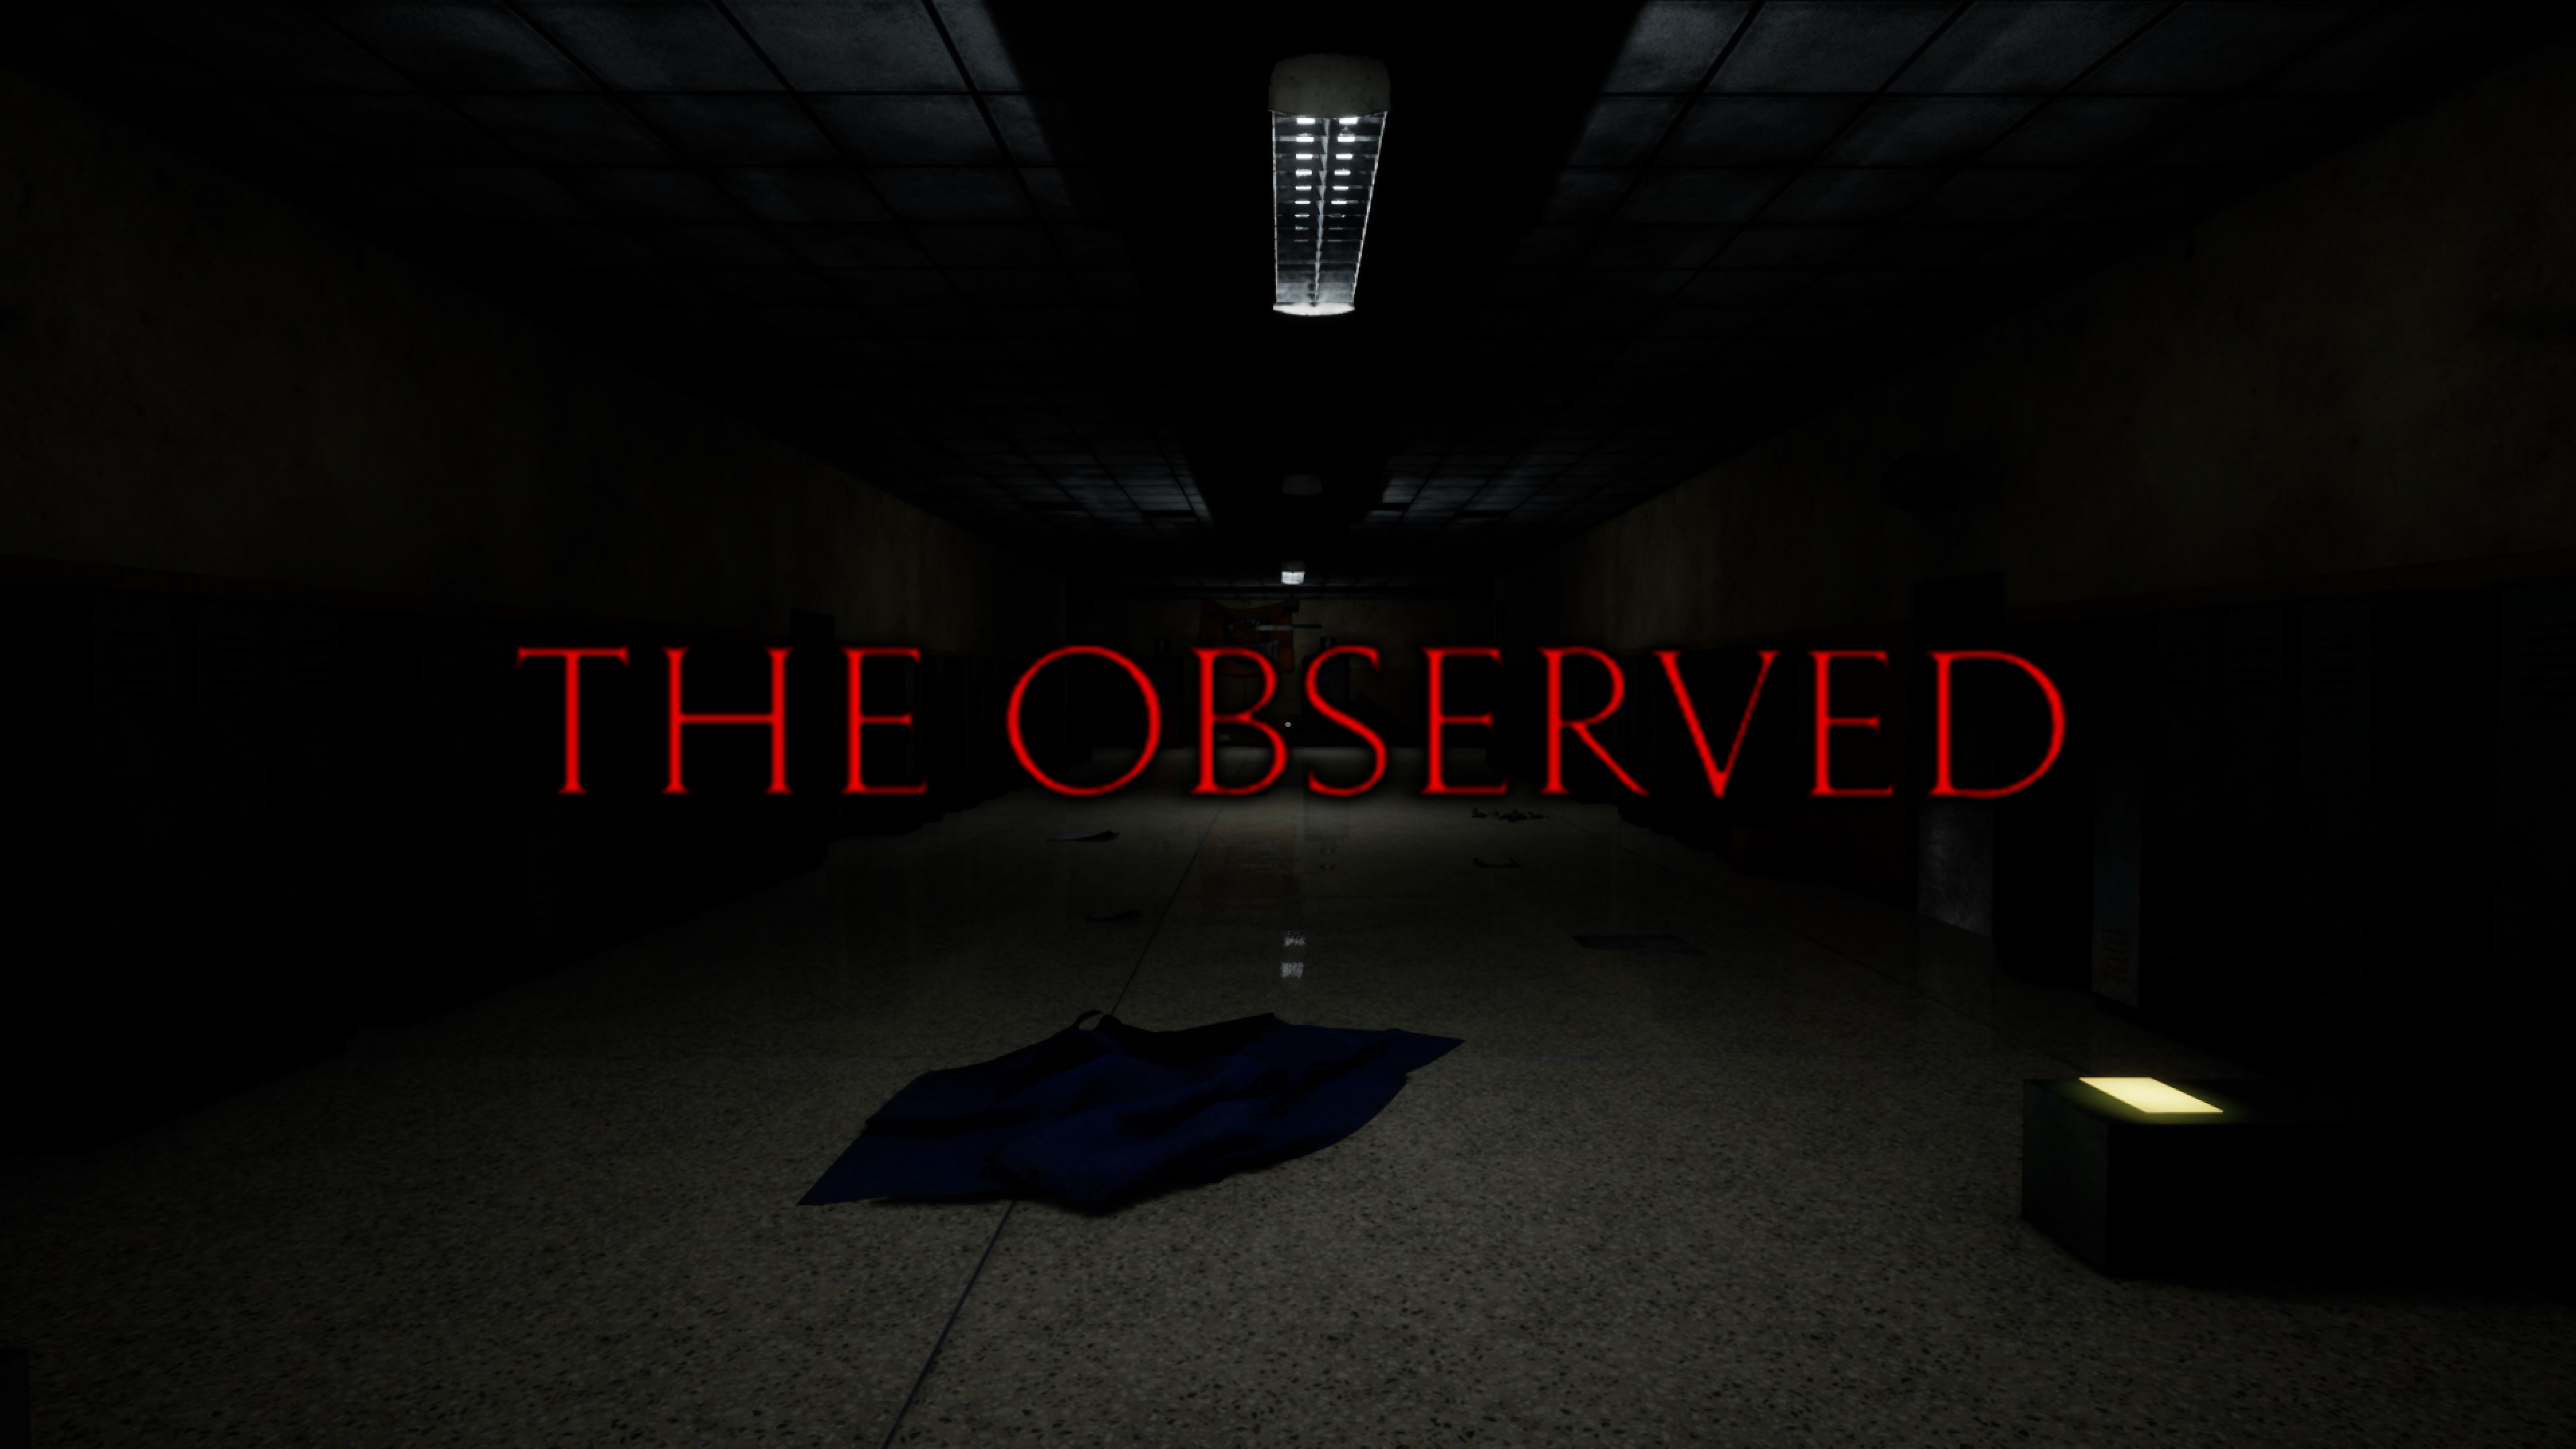 The Observed